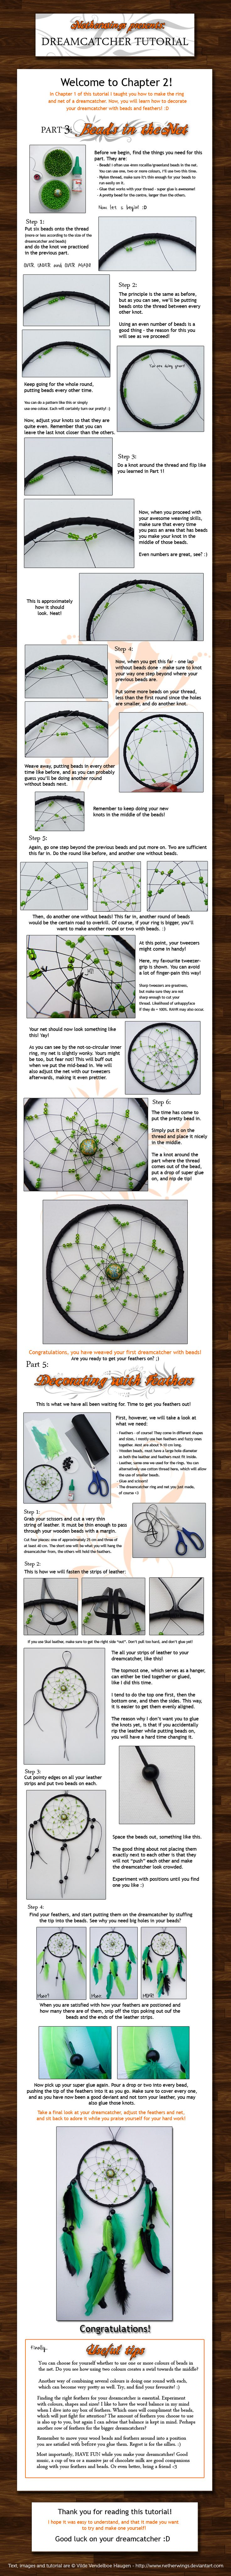 Dreamcatcher tutorial: Ch. 2 by ~netherwings on deviantART...the other chapter(s) are available on the site